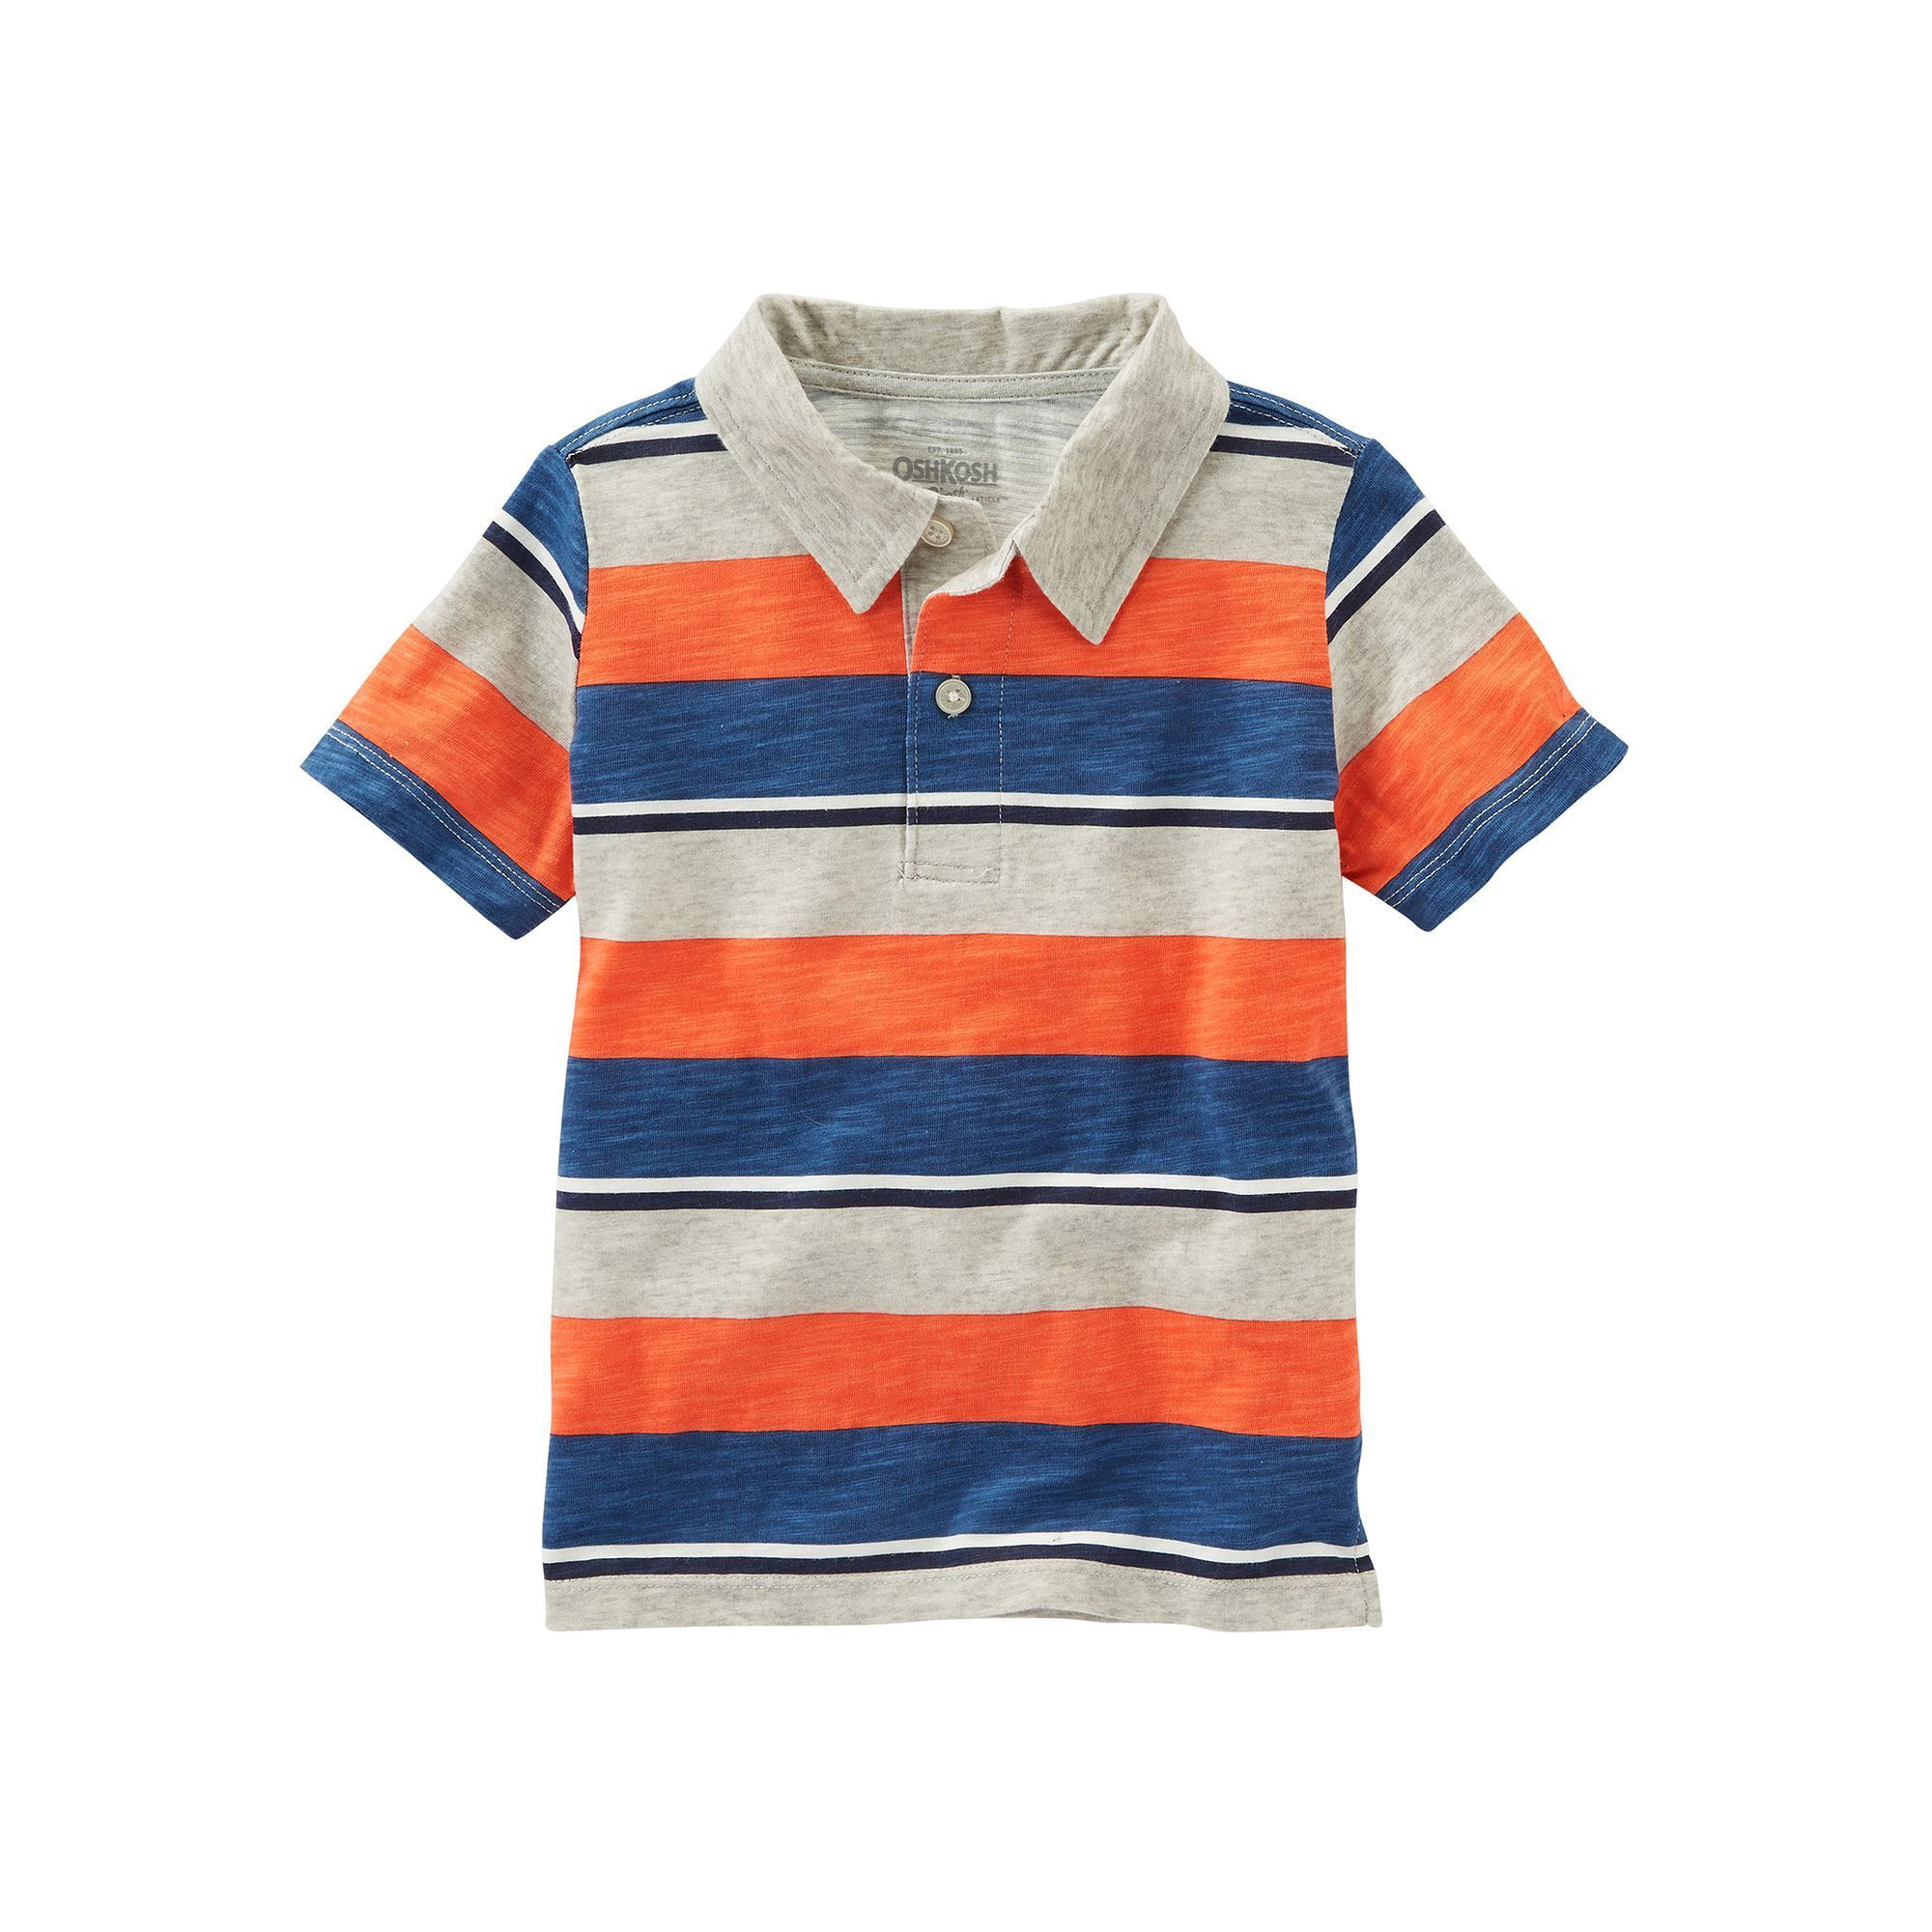 OshKosh BGosh Boys Short Sleeve Knit Polo